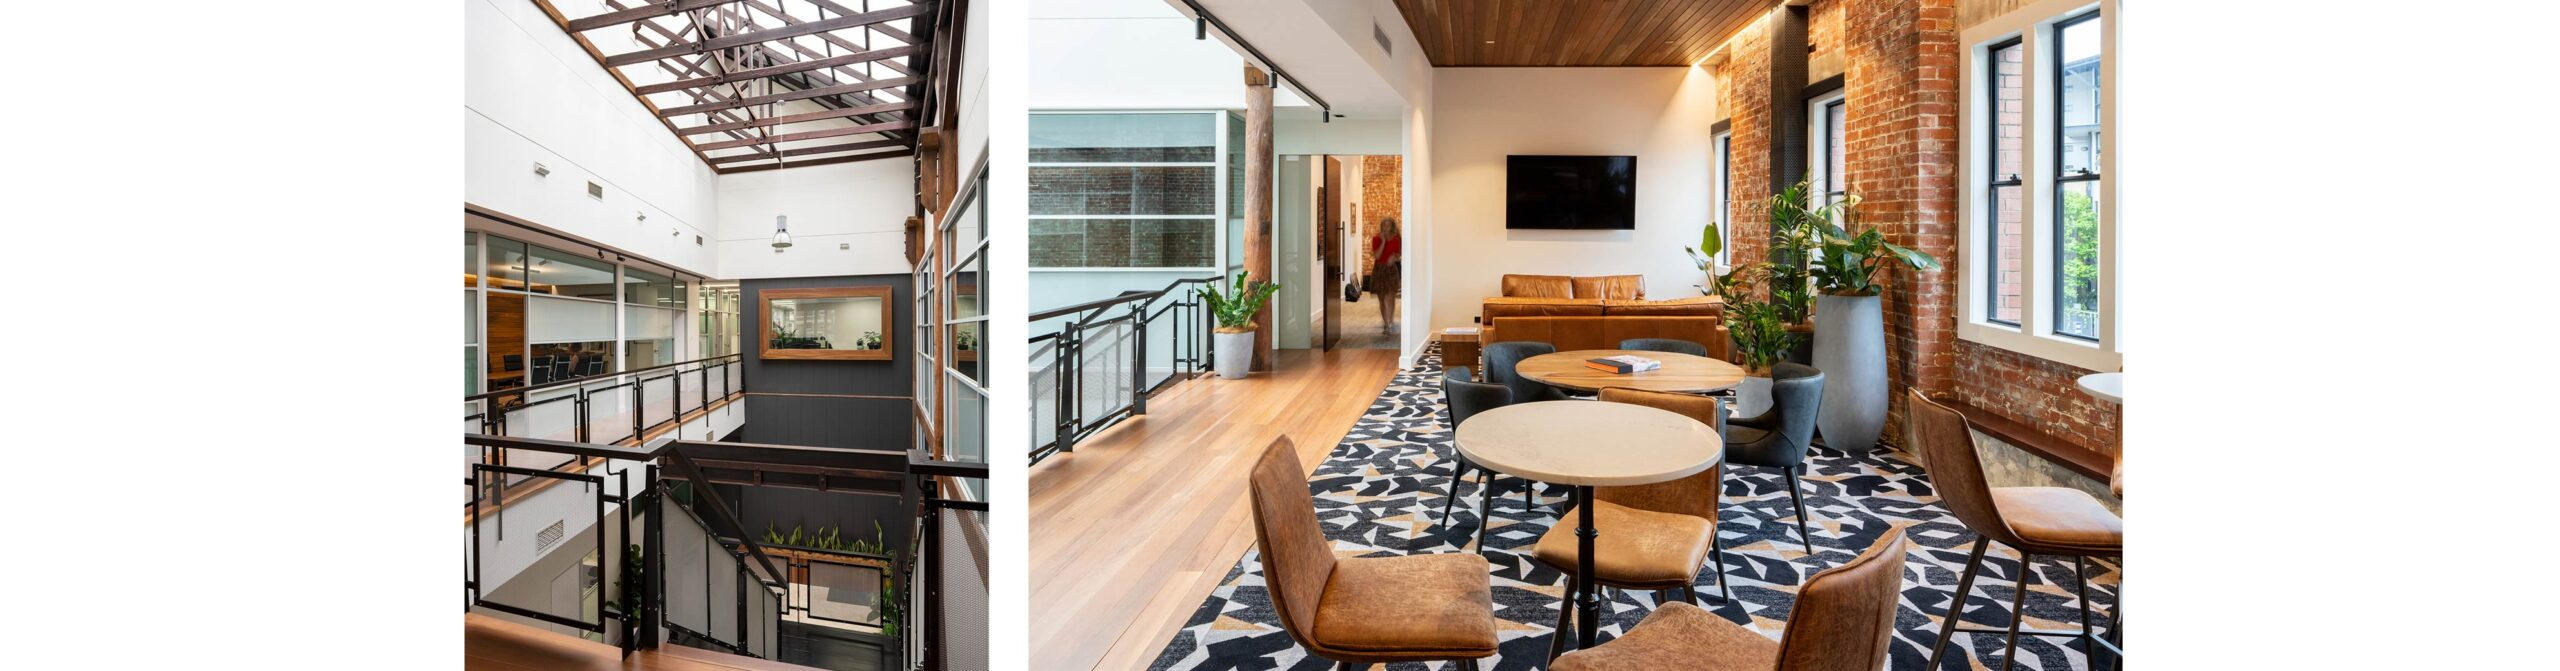 bmi-office-fitout_image-01_updated